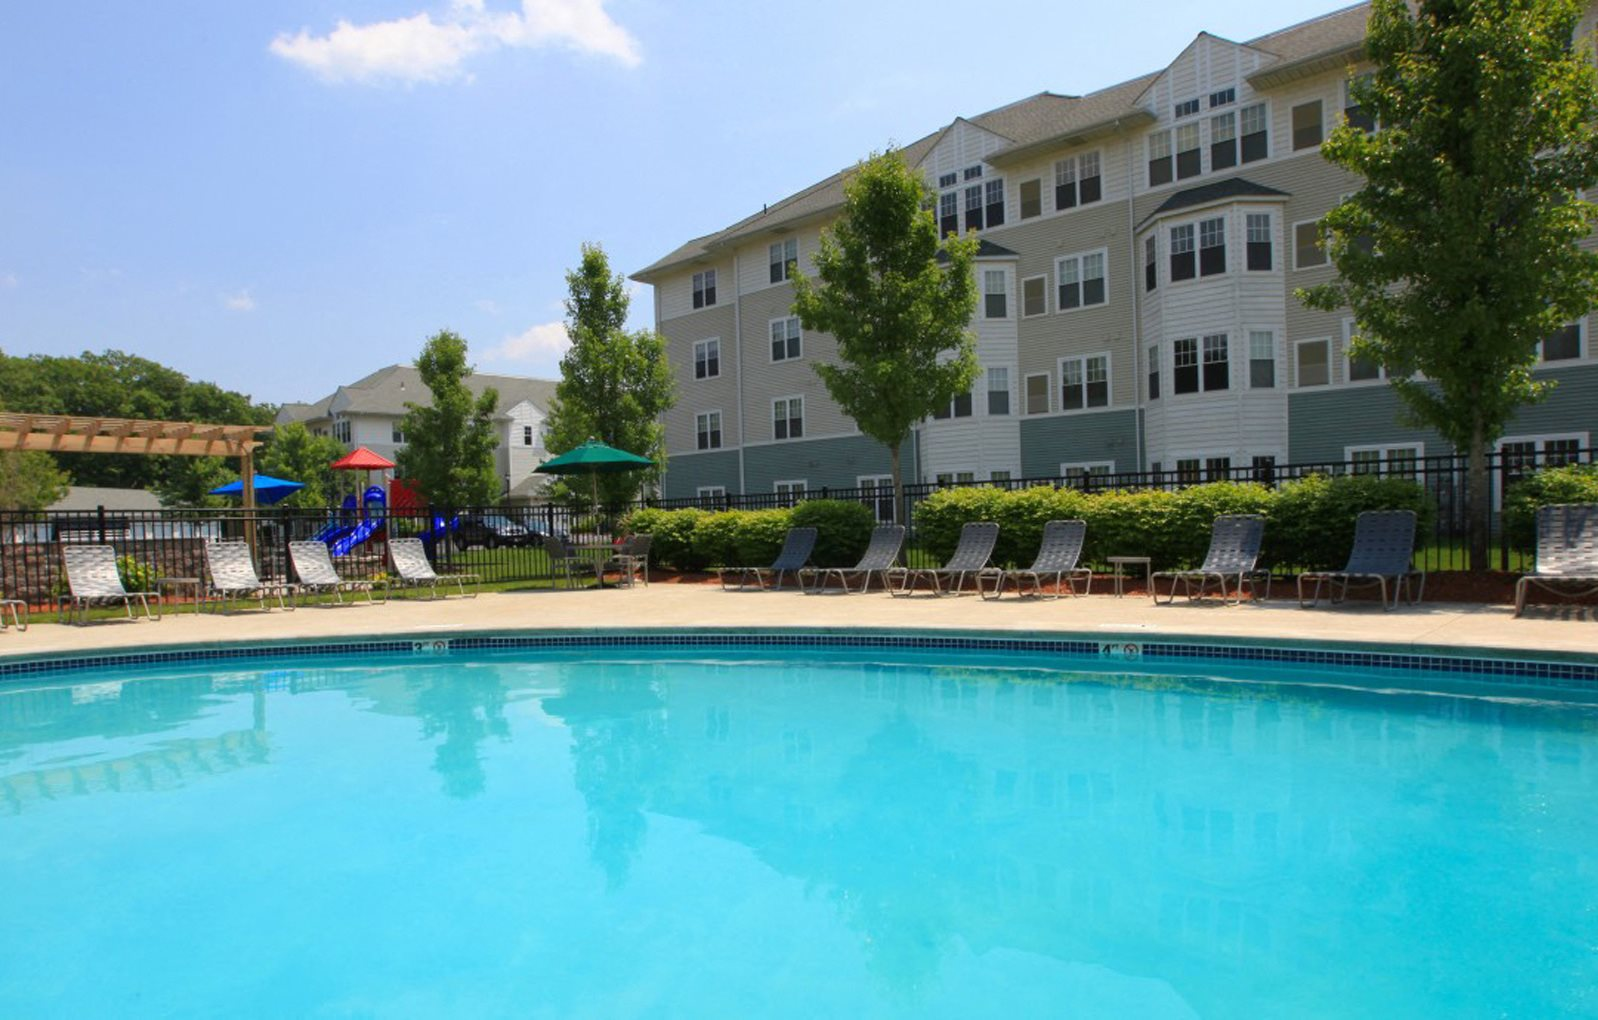 Resort Inspired Heated Swimming Pool at Union Place, Franklin, Massachusetts